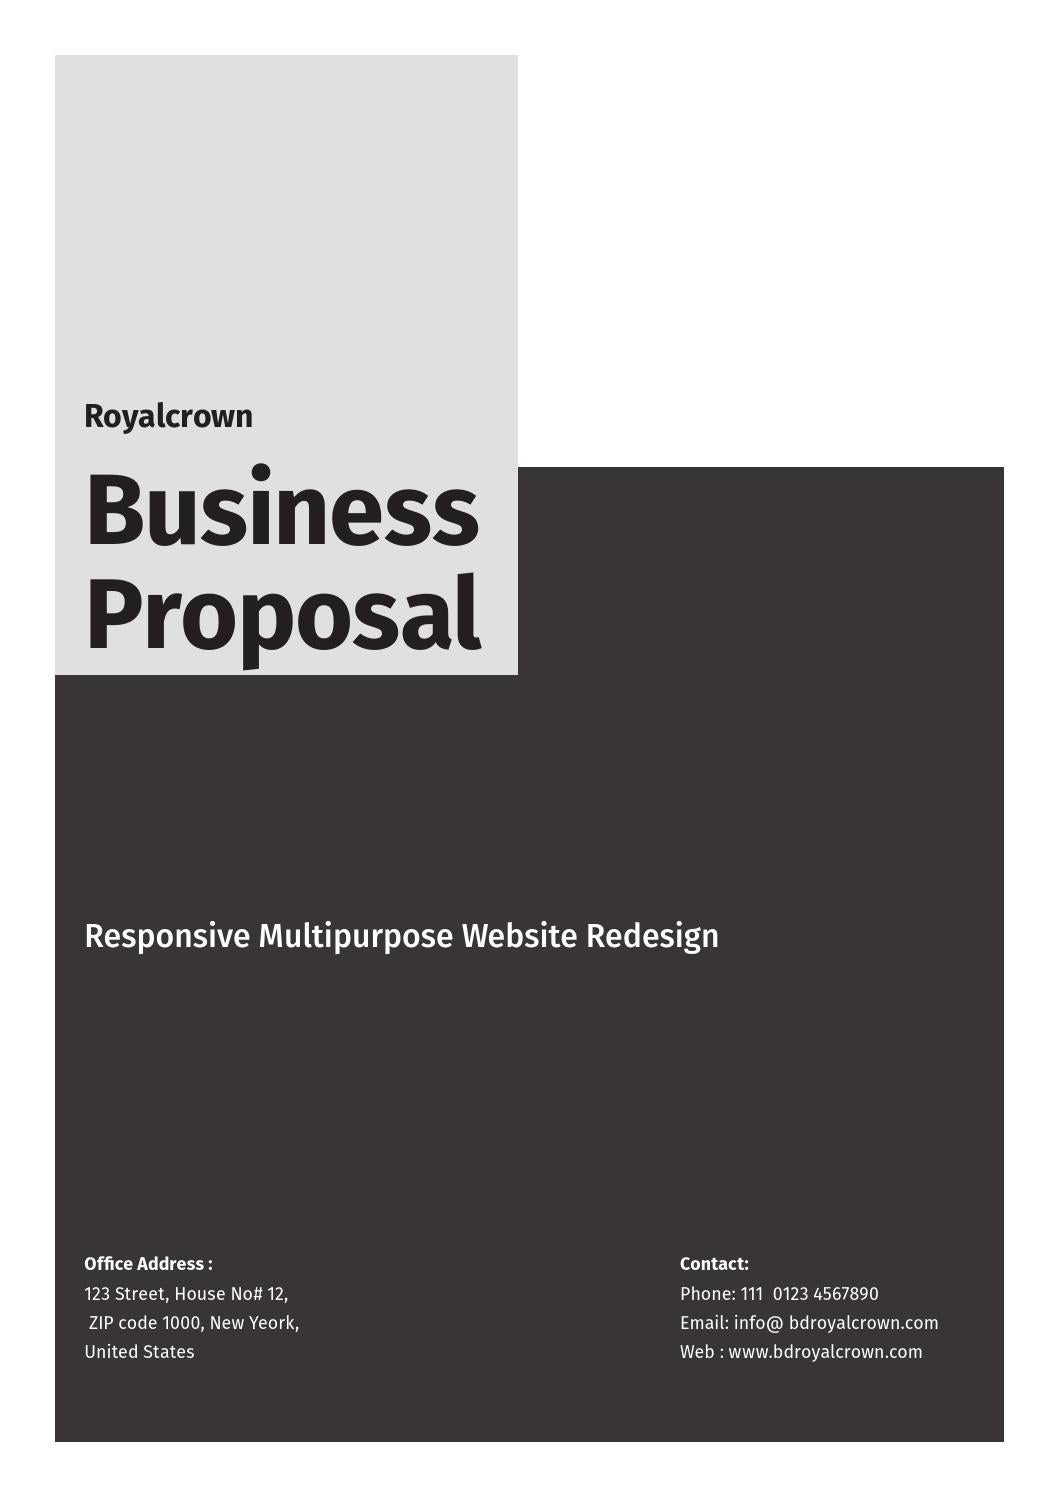 Art & Design Proposal by royalcrown - issuu